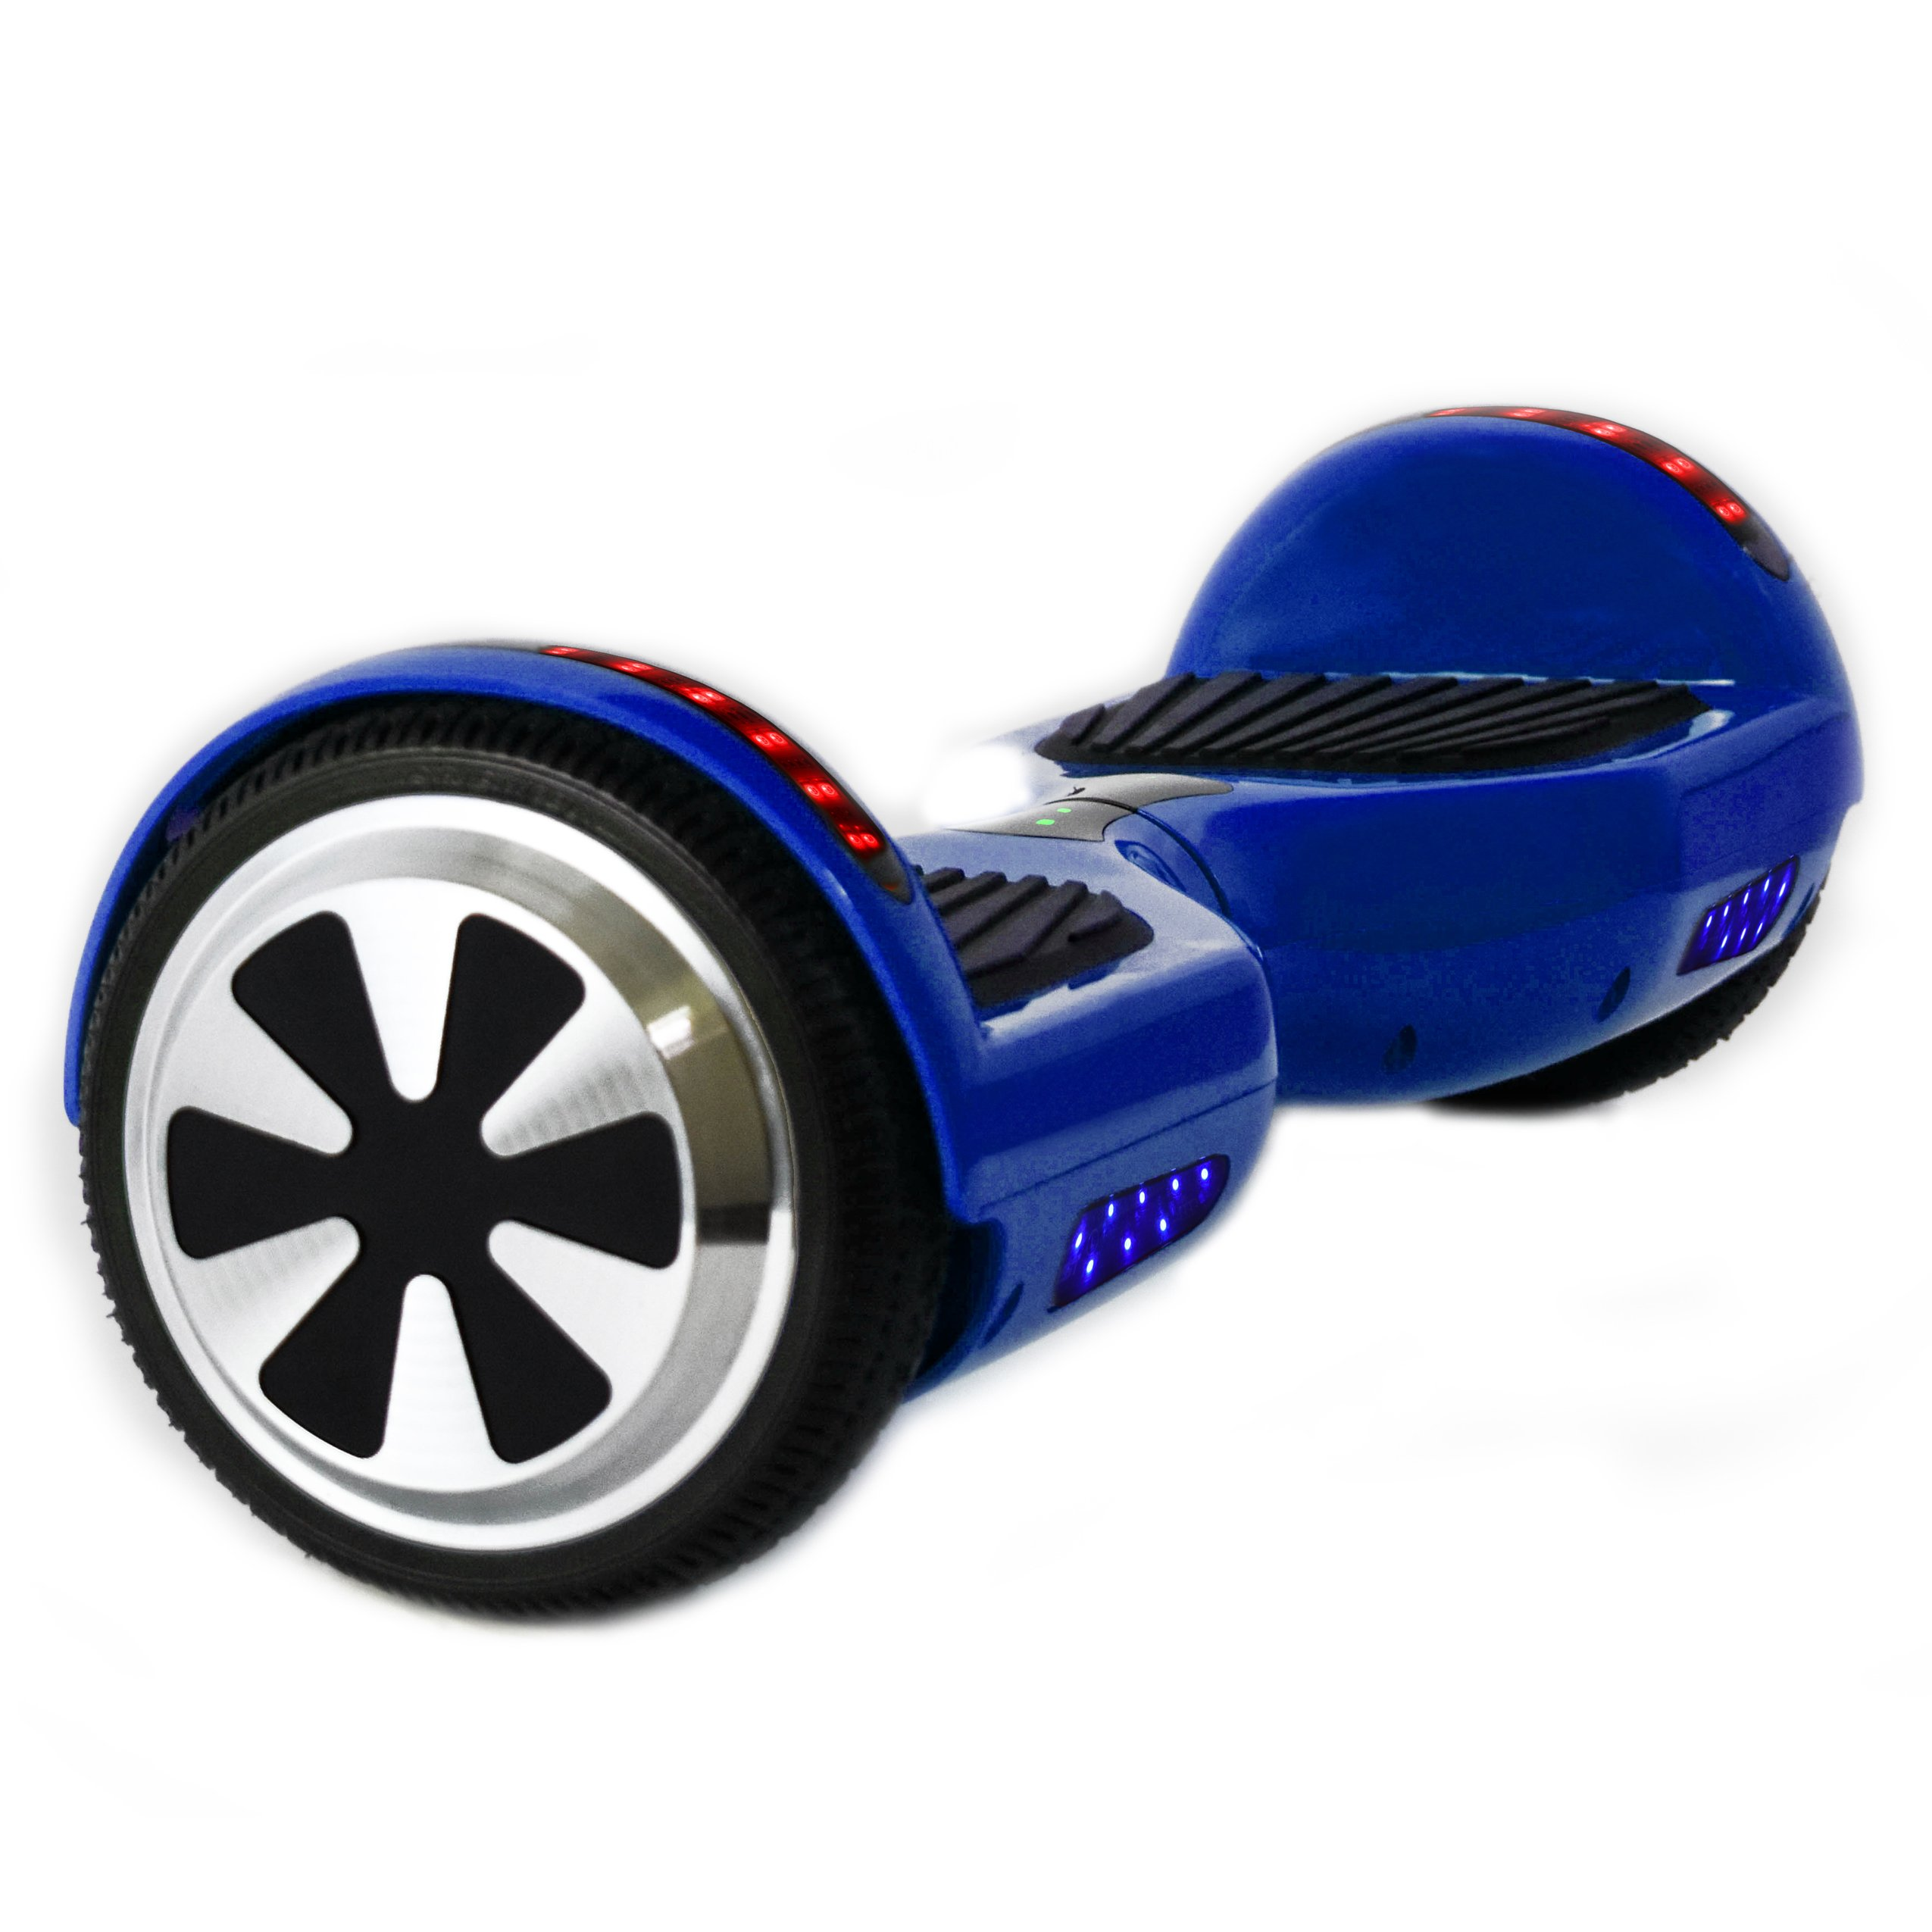 Hoverboard Two-wheel Self-balancing Scooter with Bluetooth Speaker and LED Lights - UL2272 Certified Hover Board with 6.5'' Aluminum Alloy Wheels,250W Dual Motor (Blue)